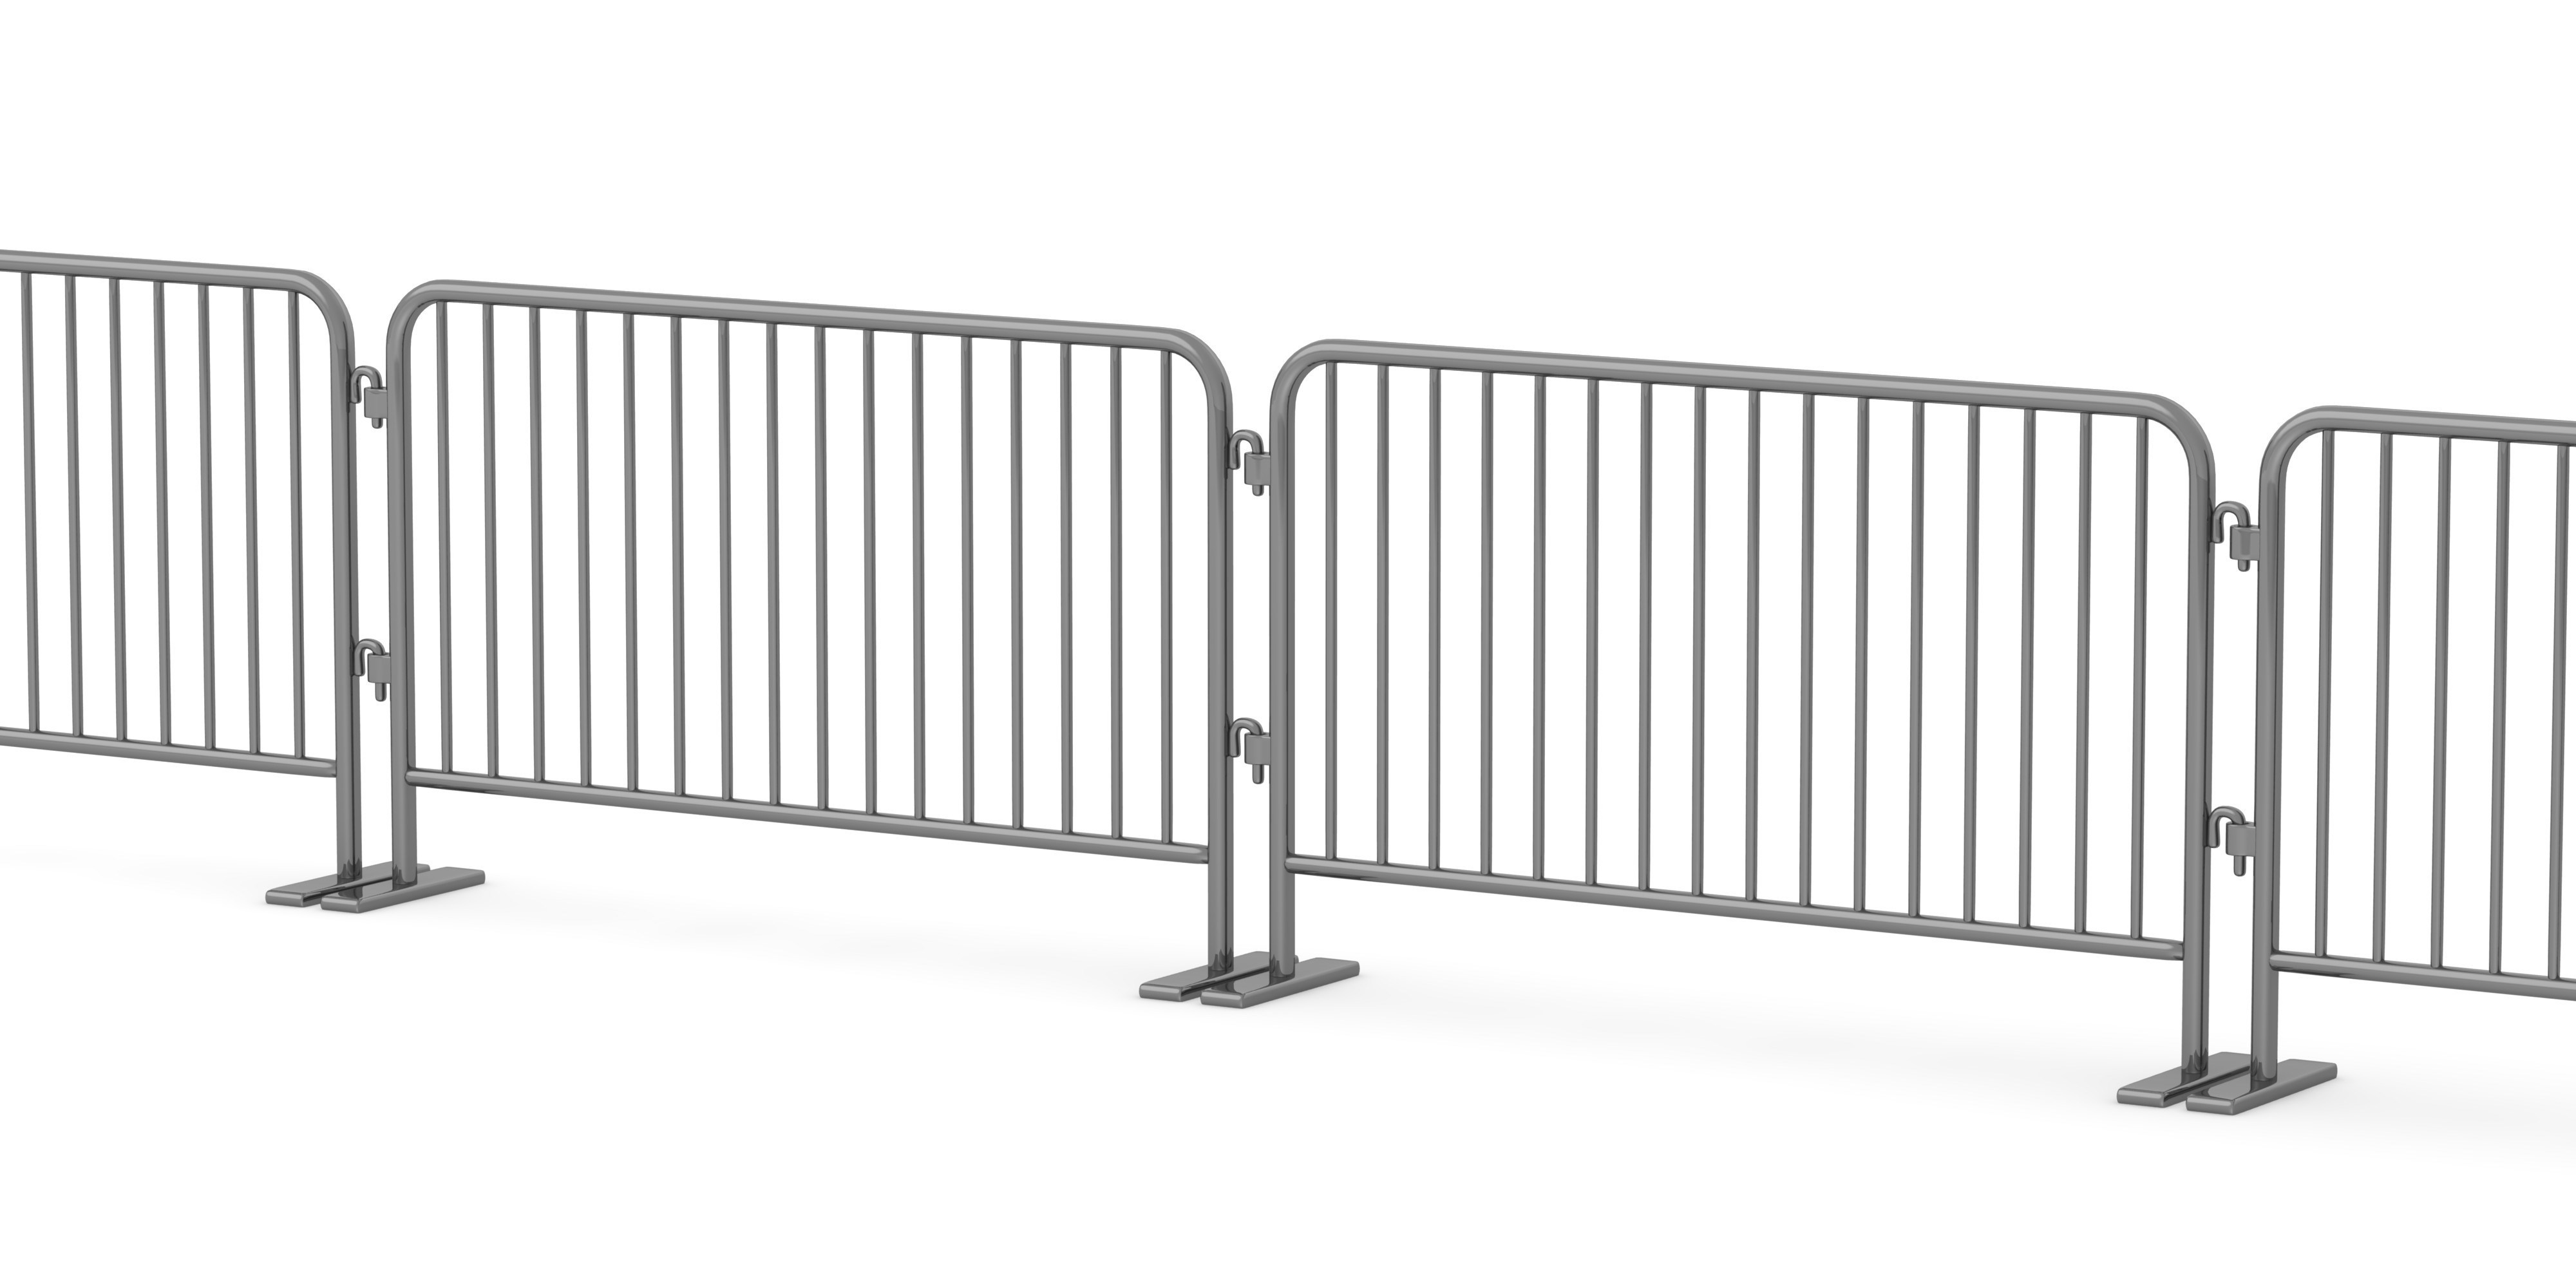 china road barricade fence  metal barriers road safety products  crowd control barrier